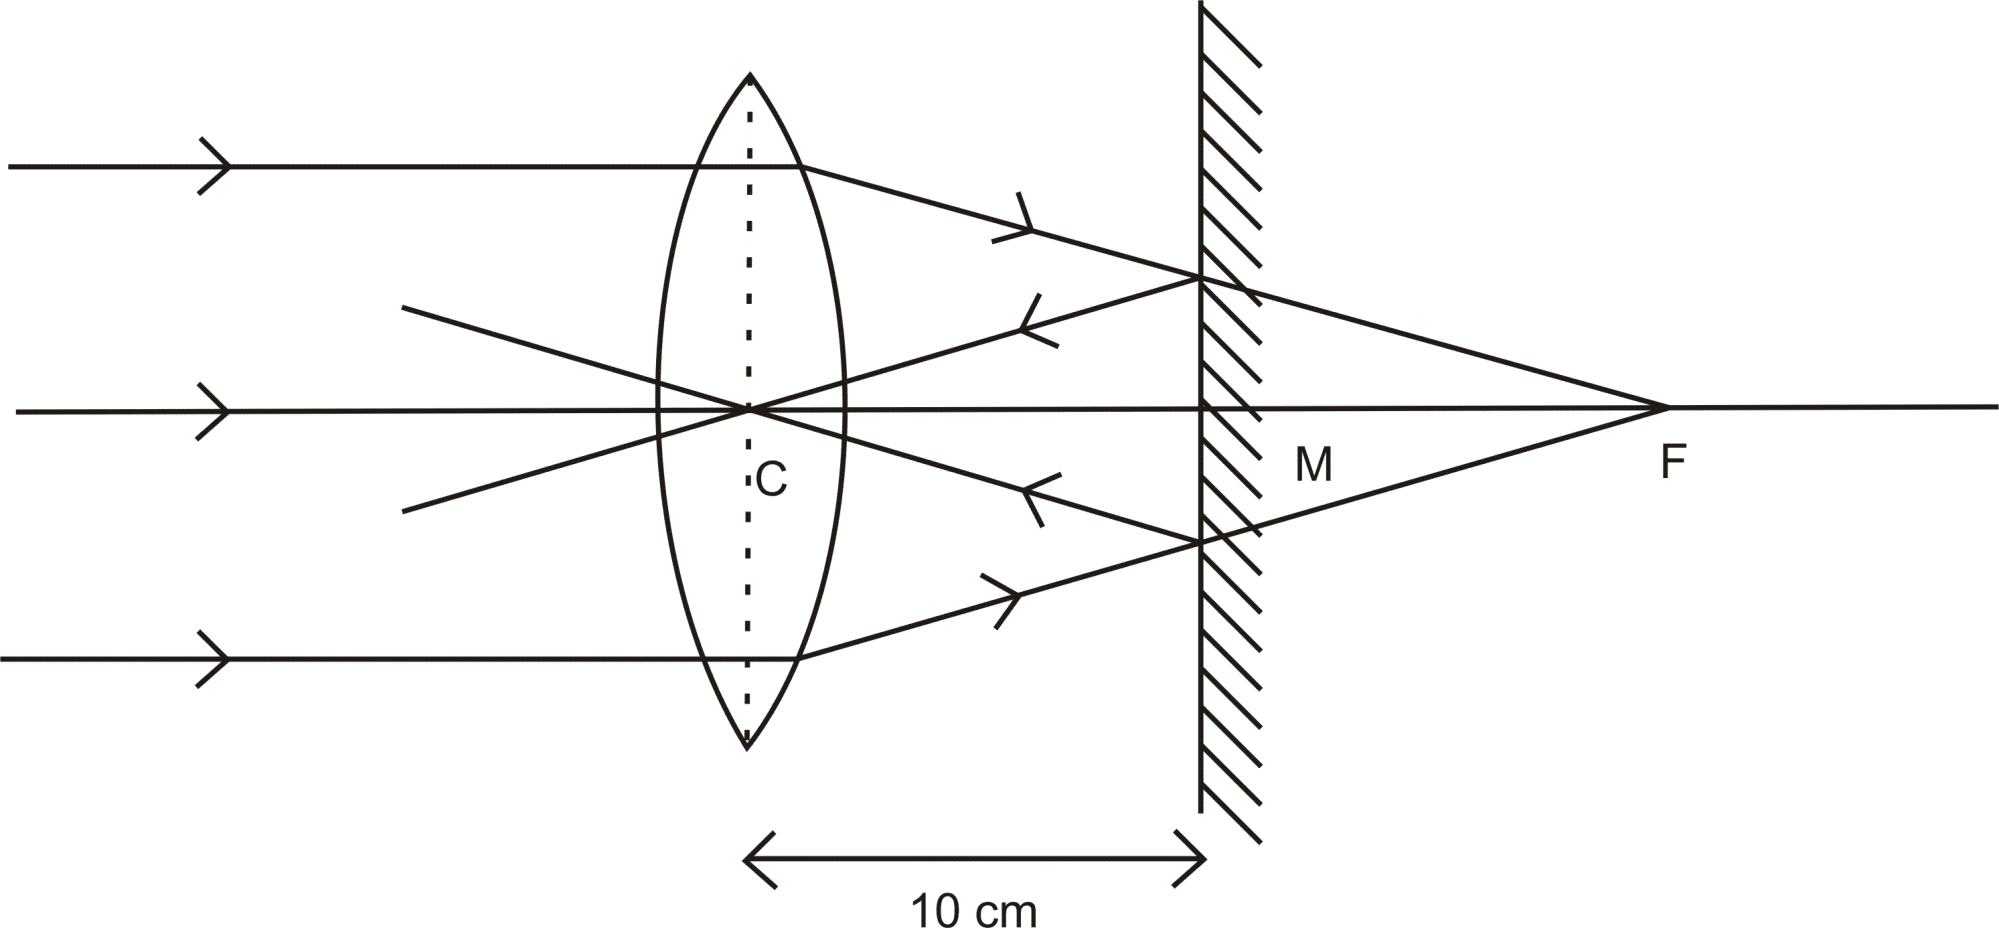 hight resolution of the parallel rays incident on the convex lens converge at the focus f of the lens at the mirror after reflection forms an image at the optical centre of